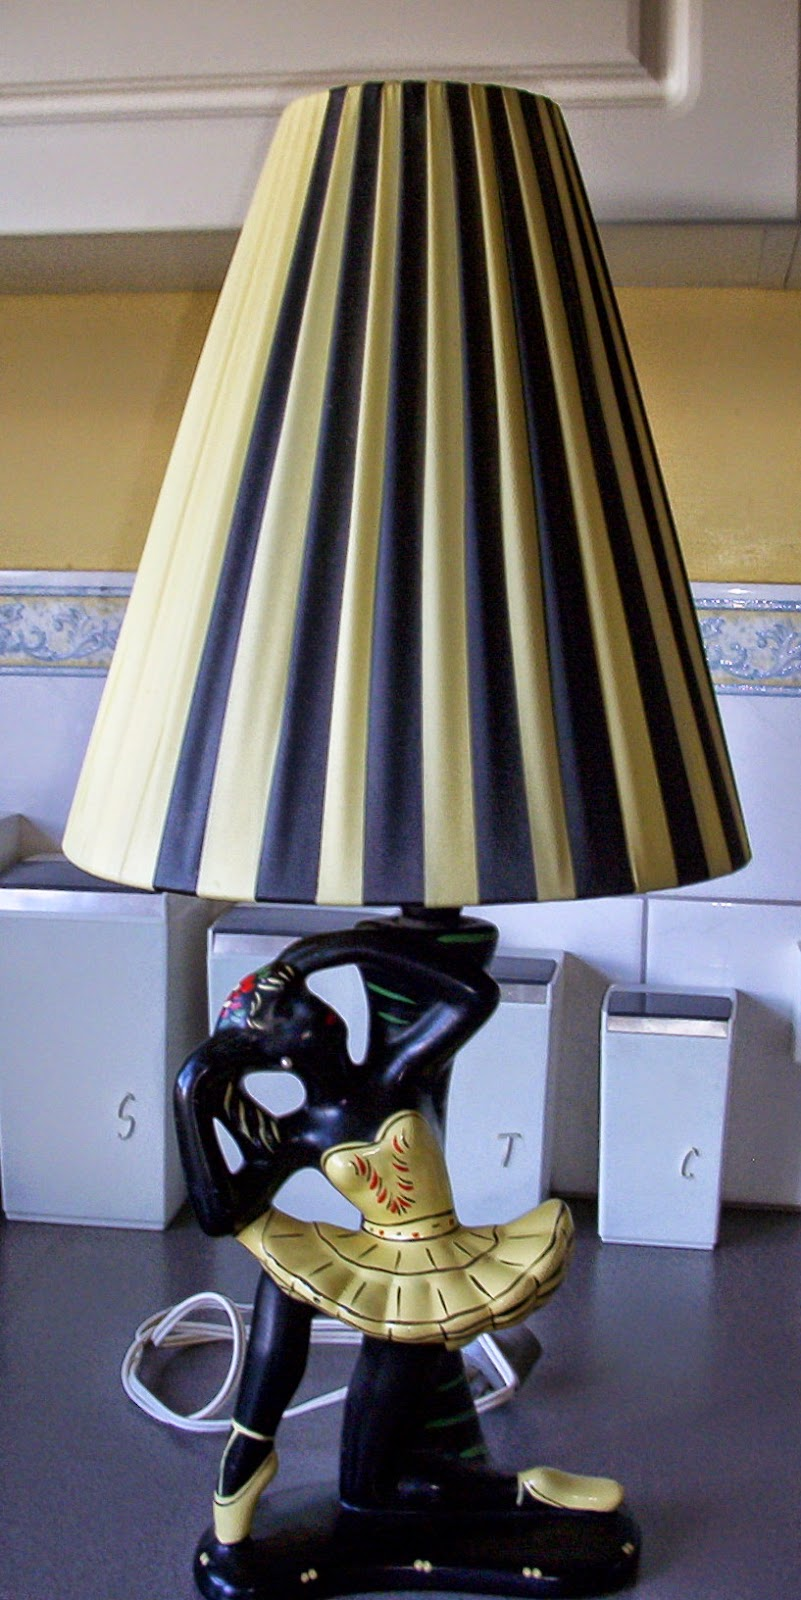 Merlene fawdry pre release information how to make barsony this simple how to guide for making plastic ribbon lamp shades for retro lamp bases tells you where to source materials and gives step by step aloadofball Choice Image